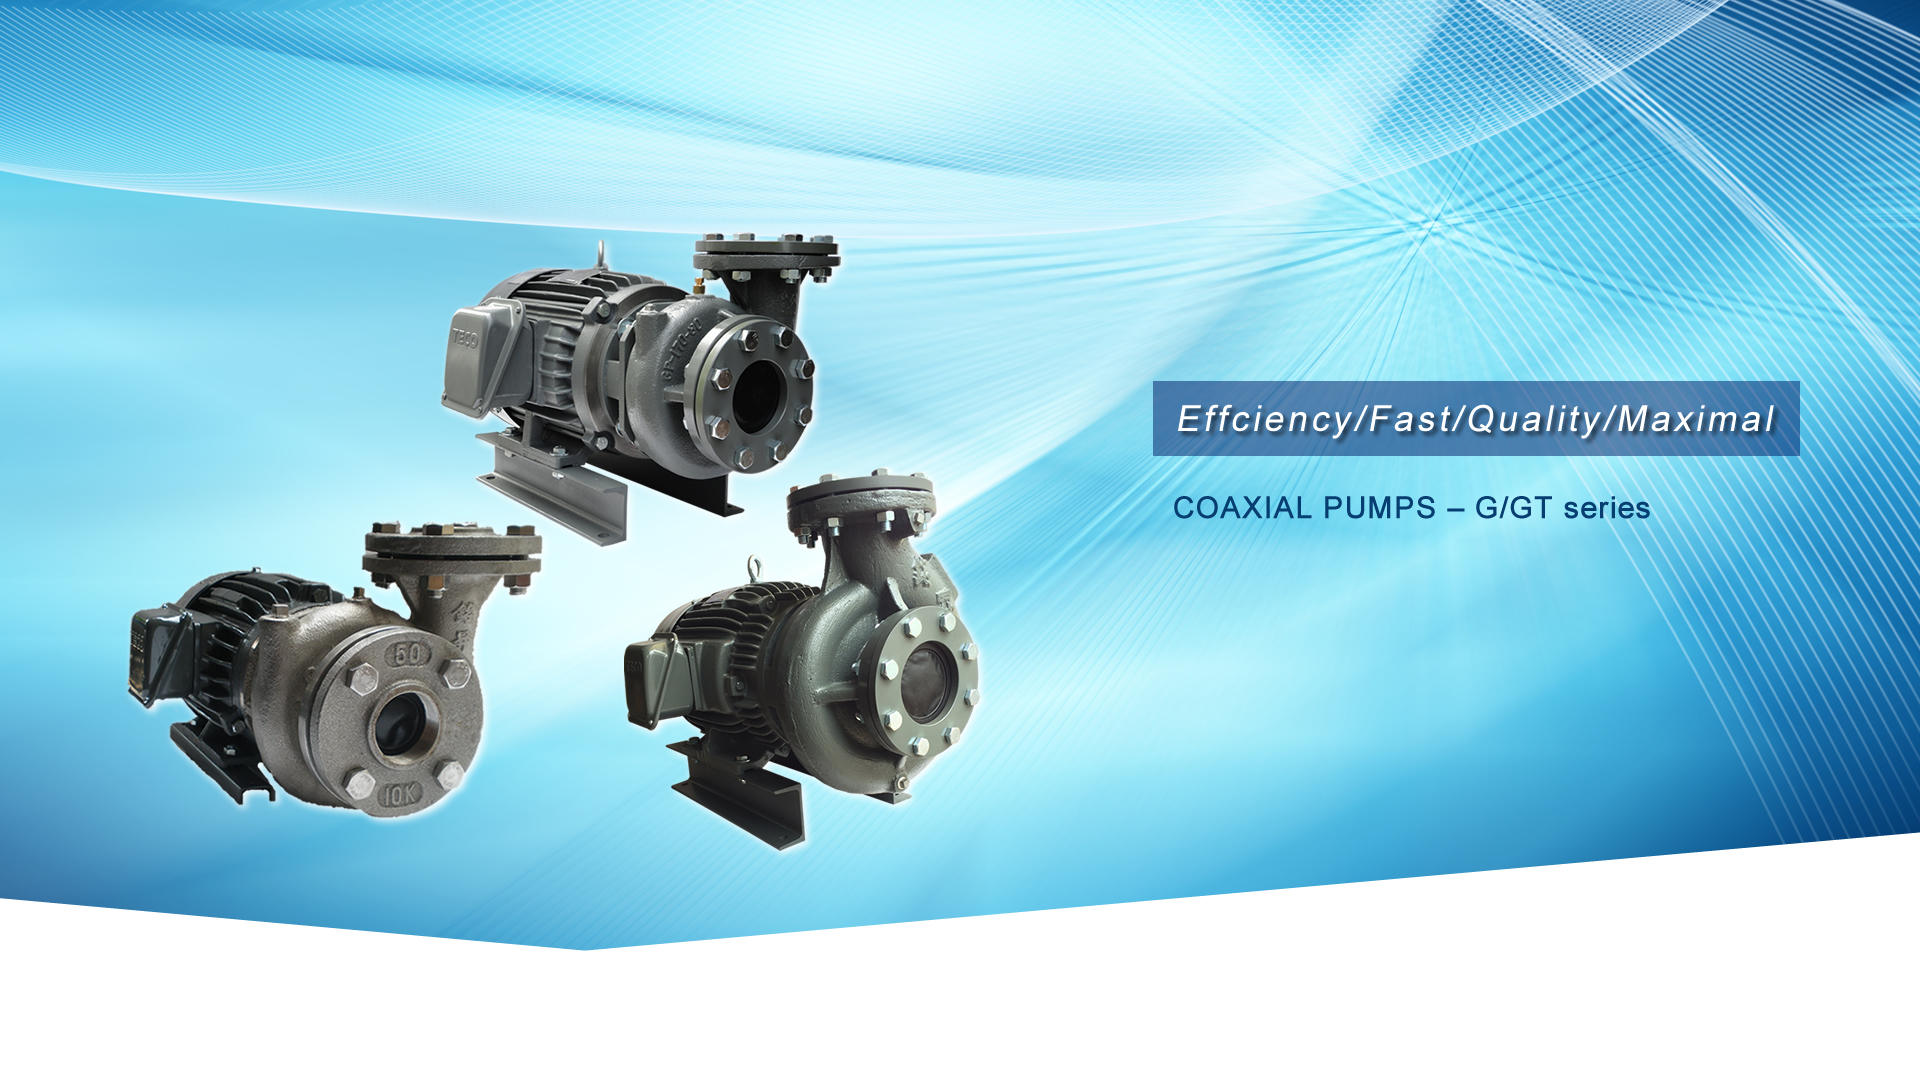 COAXIAL PUMPS – G/GT series